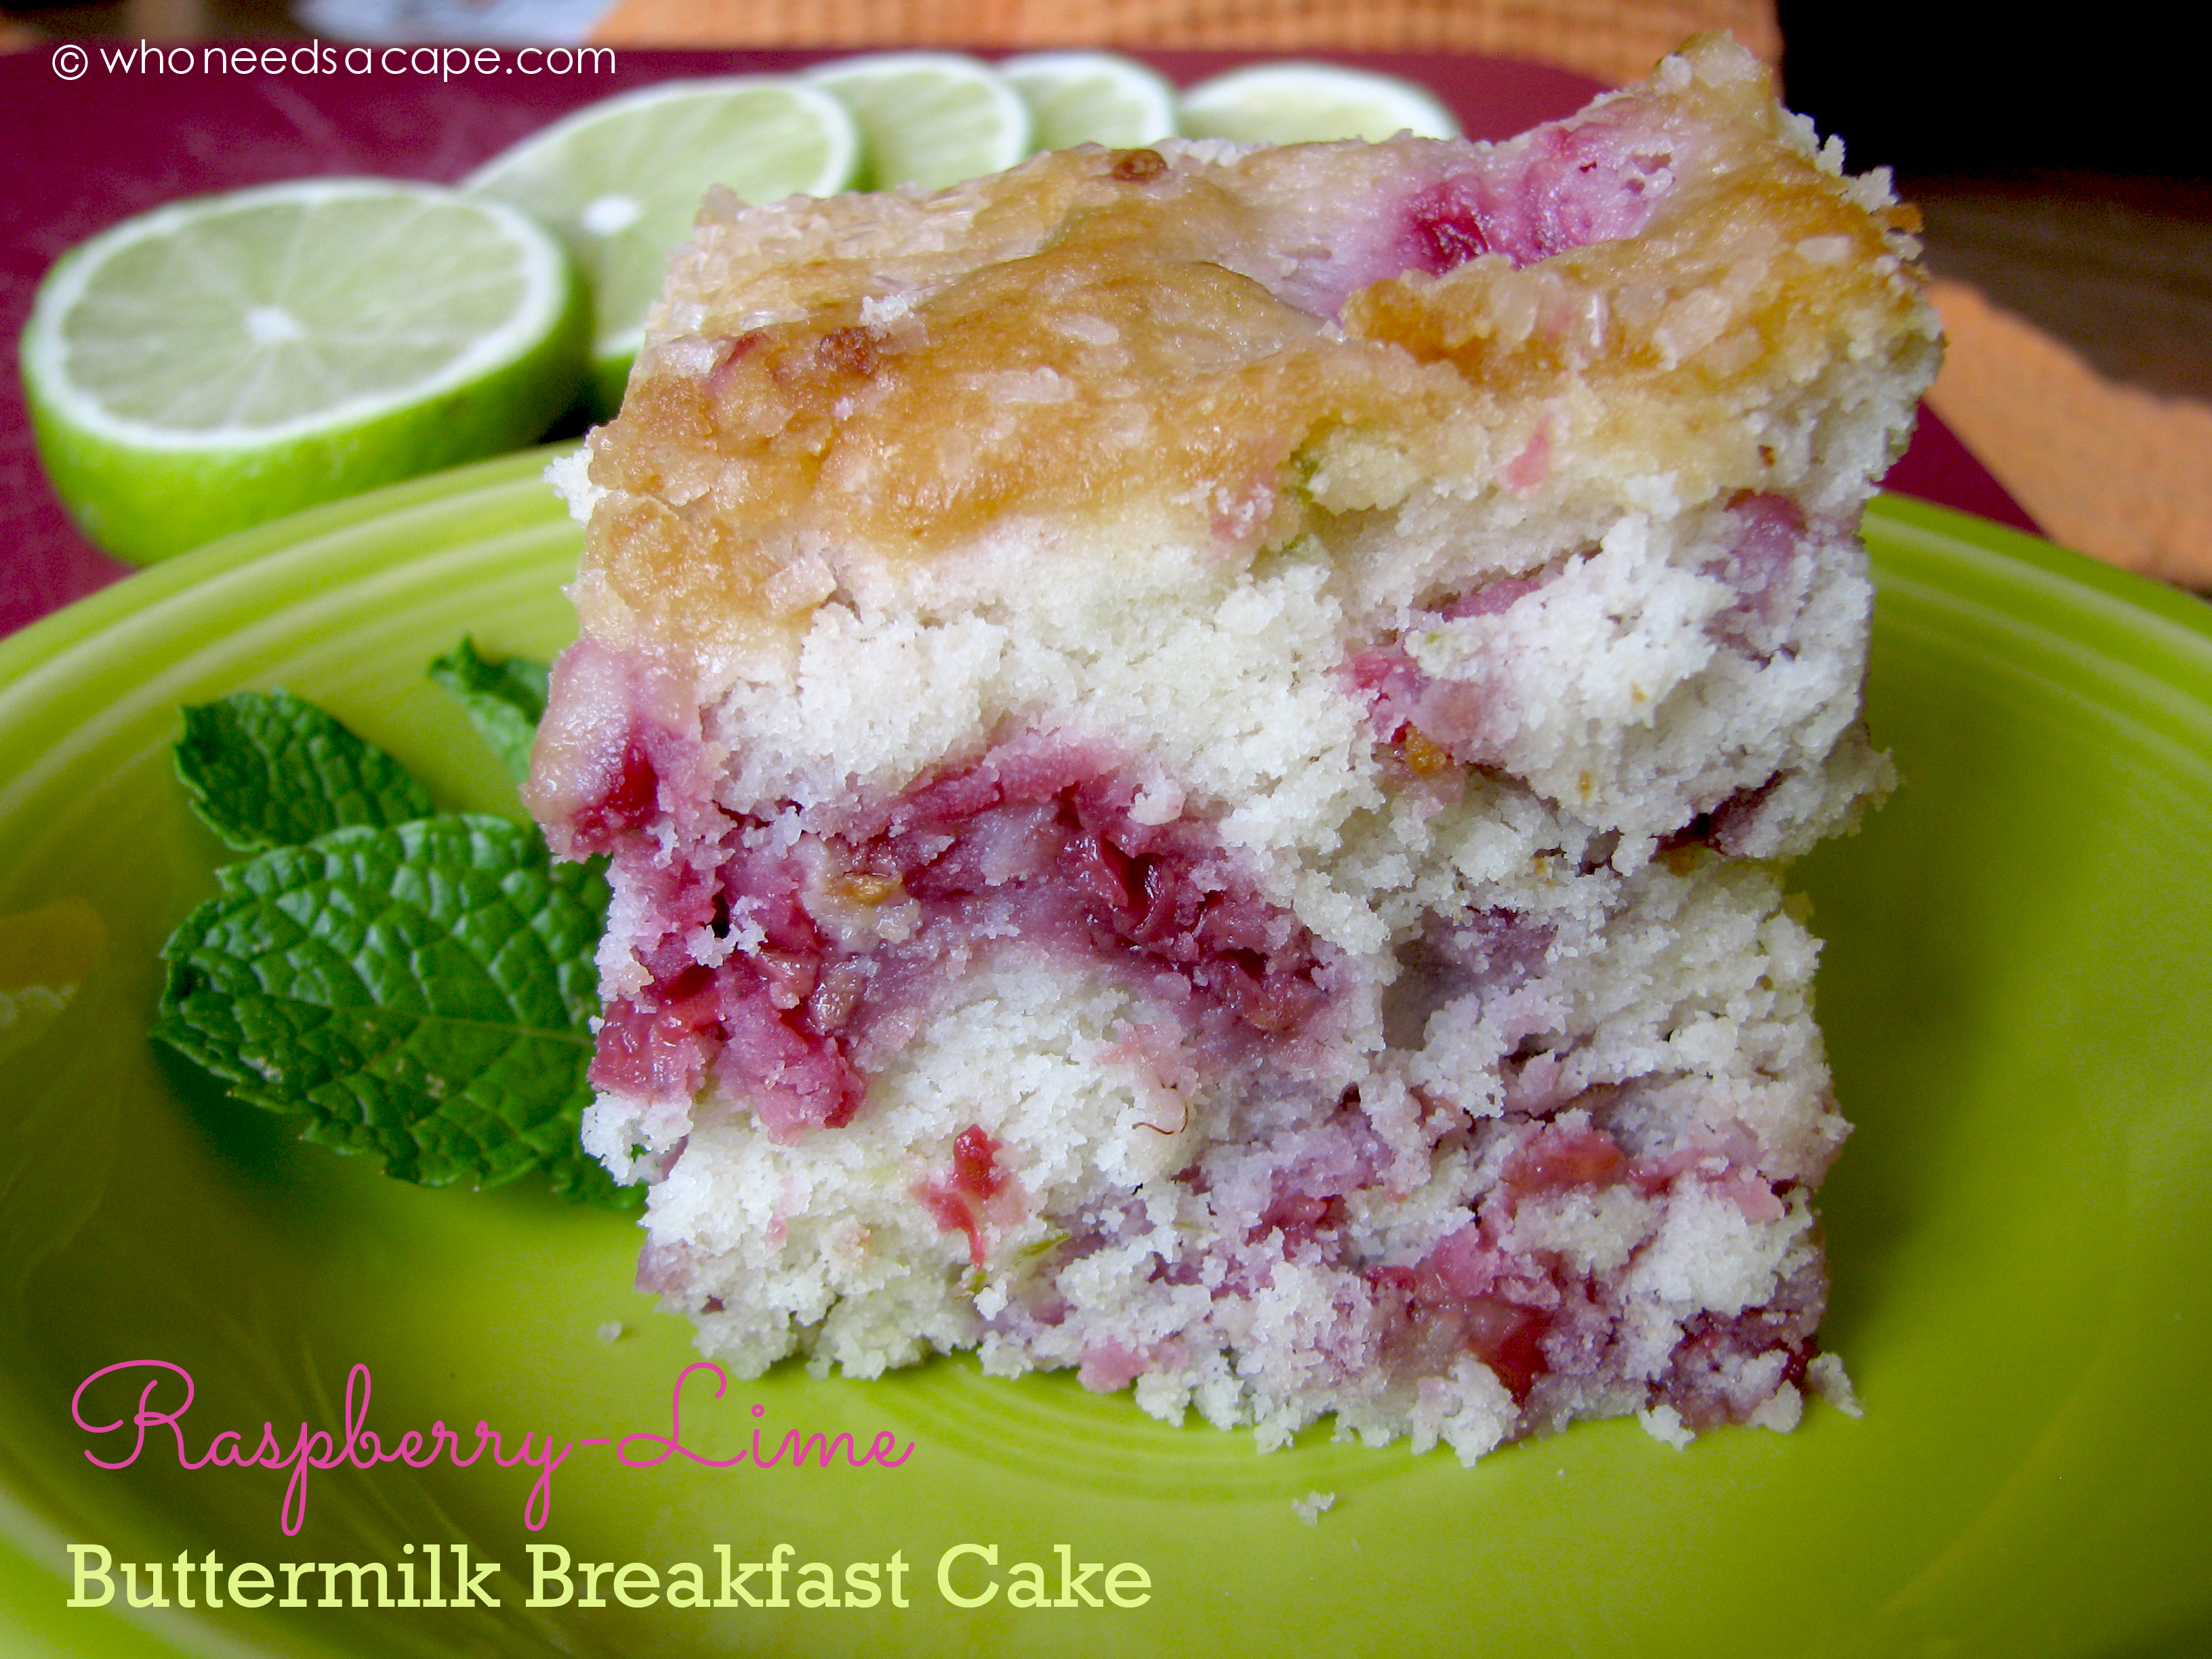 Raspberry-Lime Buttermilk Breakfast Cake